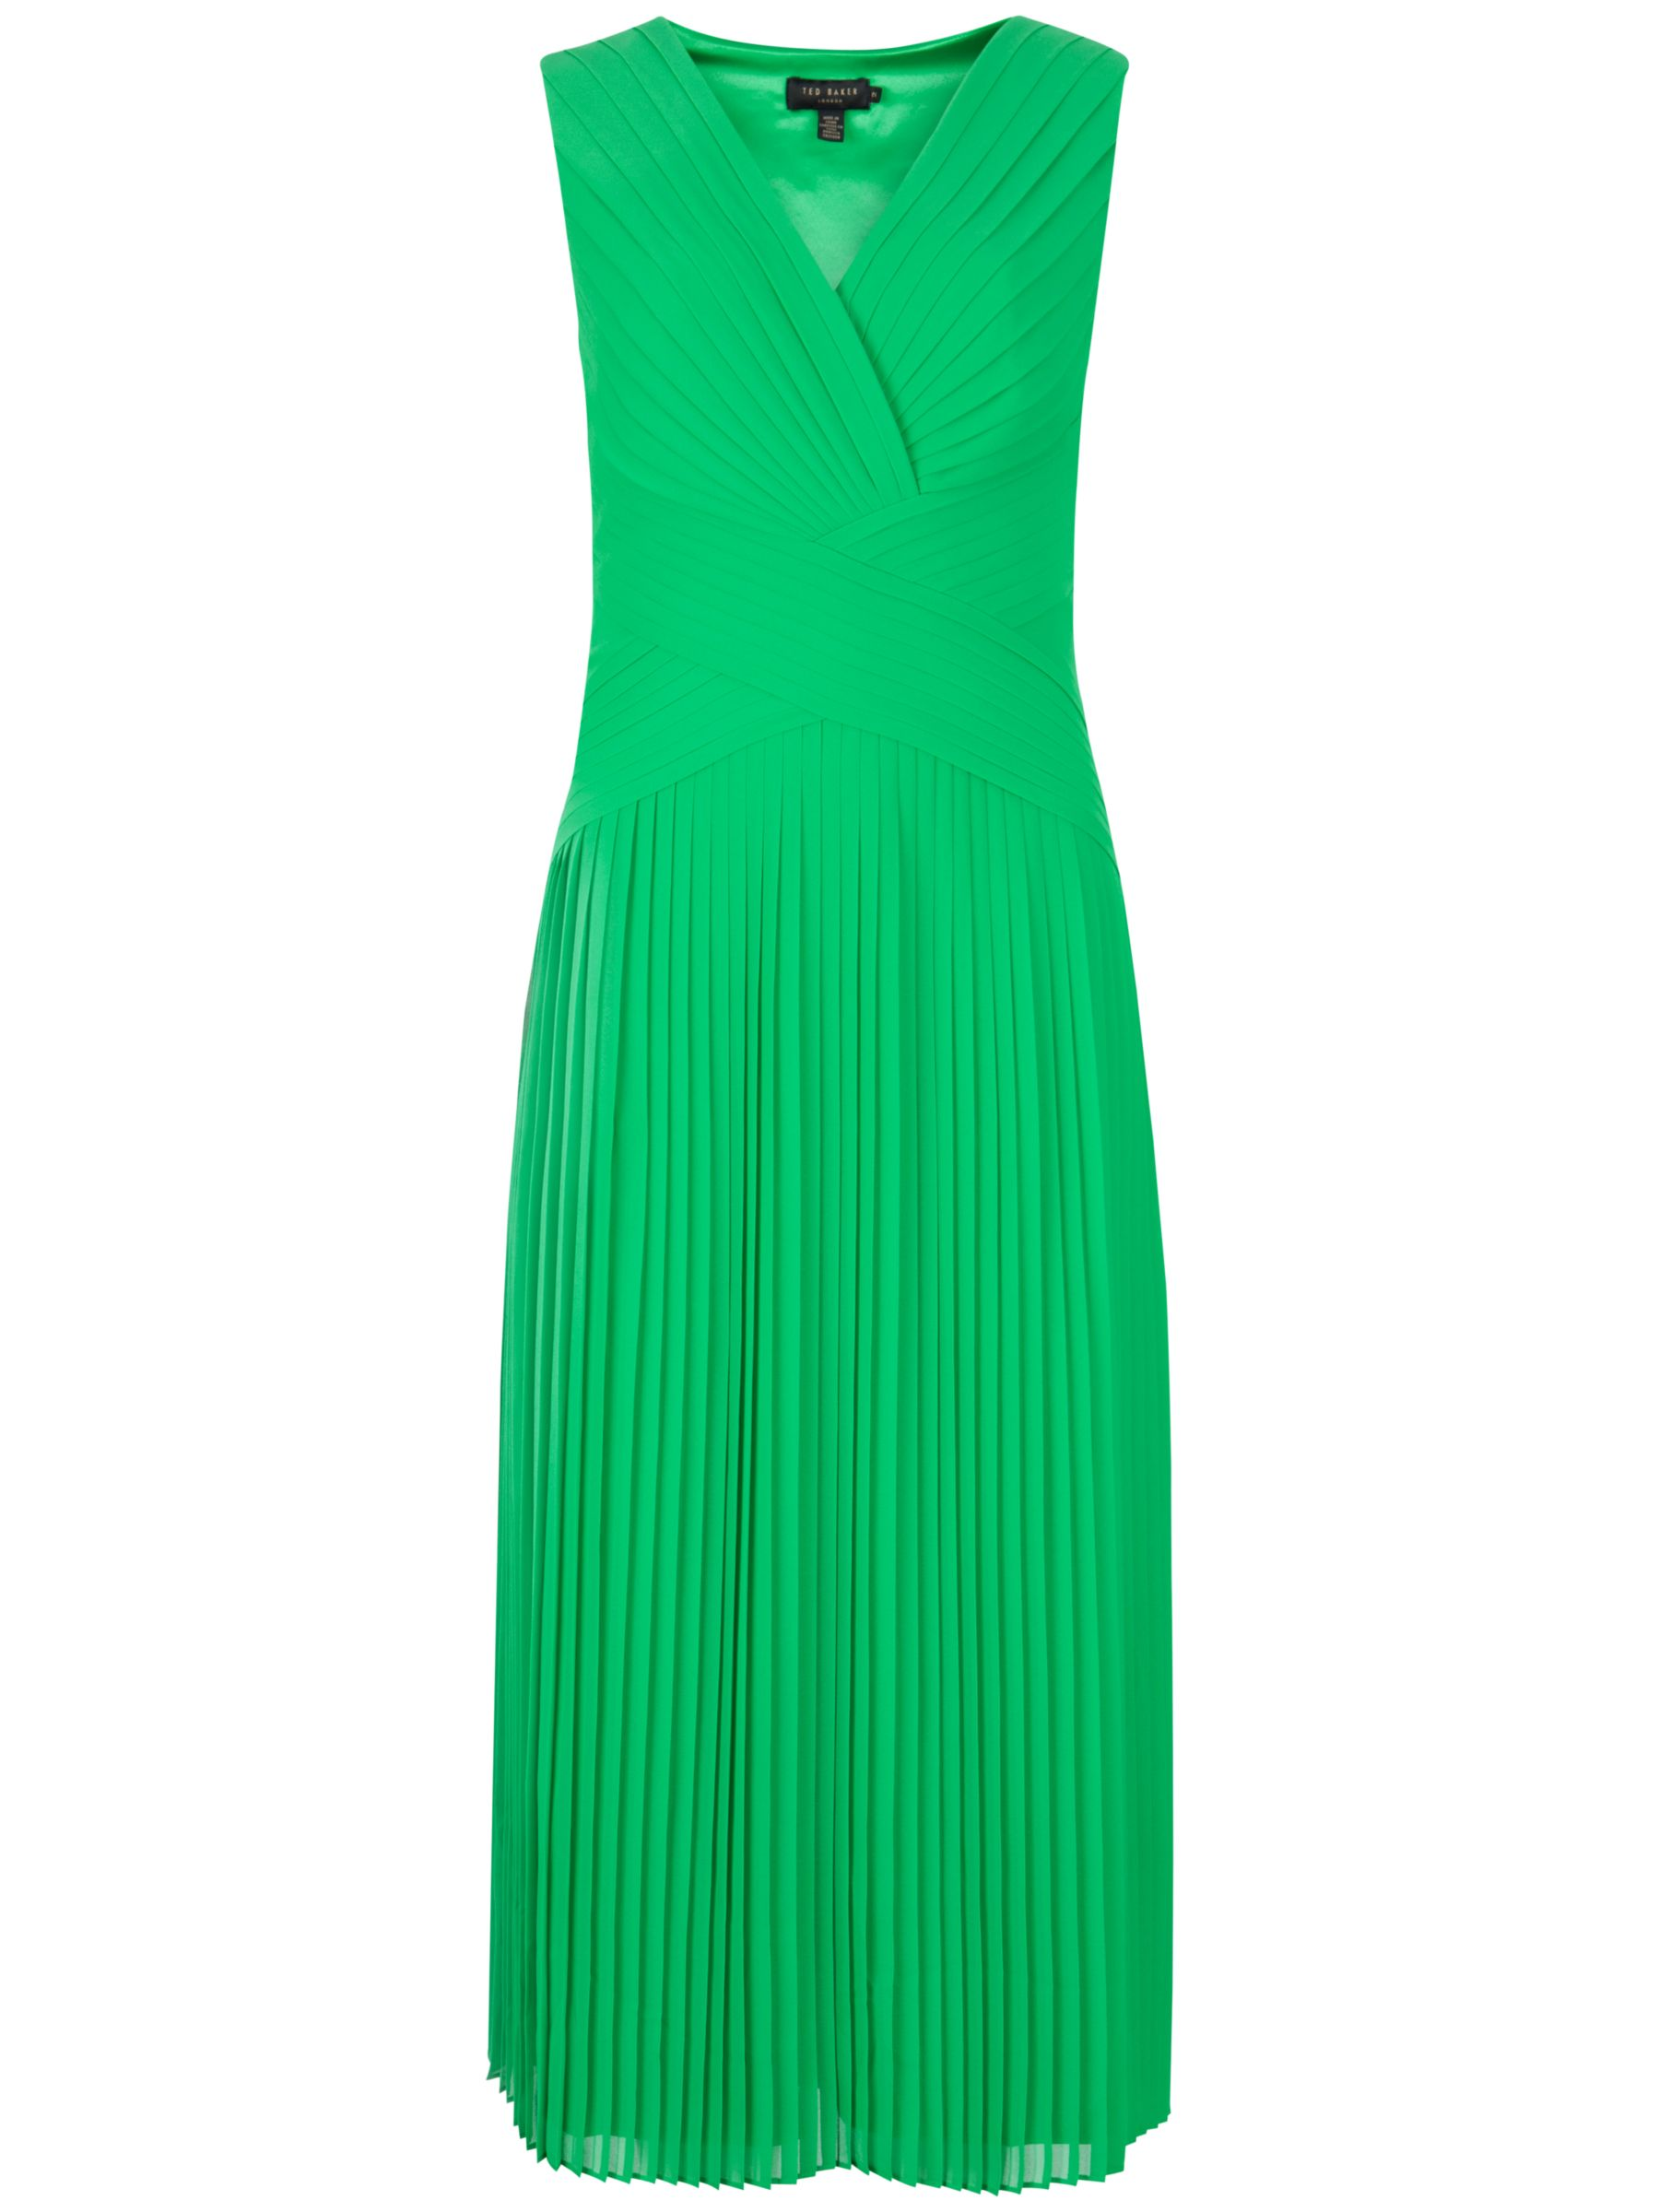 ted baker midi pleat panel dress dark green, ted, baker, midi, pleat, panel, dress, dark, green, ted baker, 2|0|1|3|5|4, women, womens dresses, new in clothing, fashion magazine, womenswear, men, brands l-z, 1915489